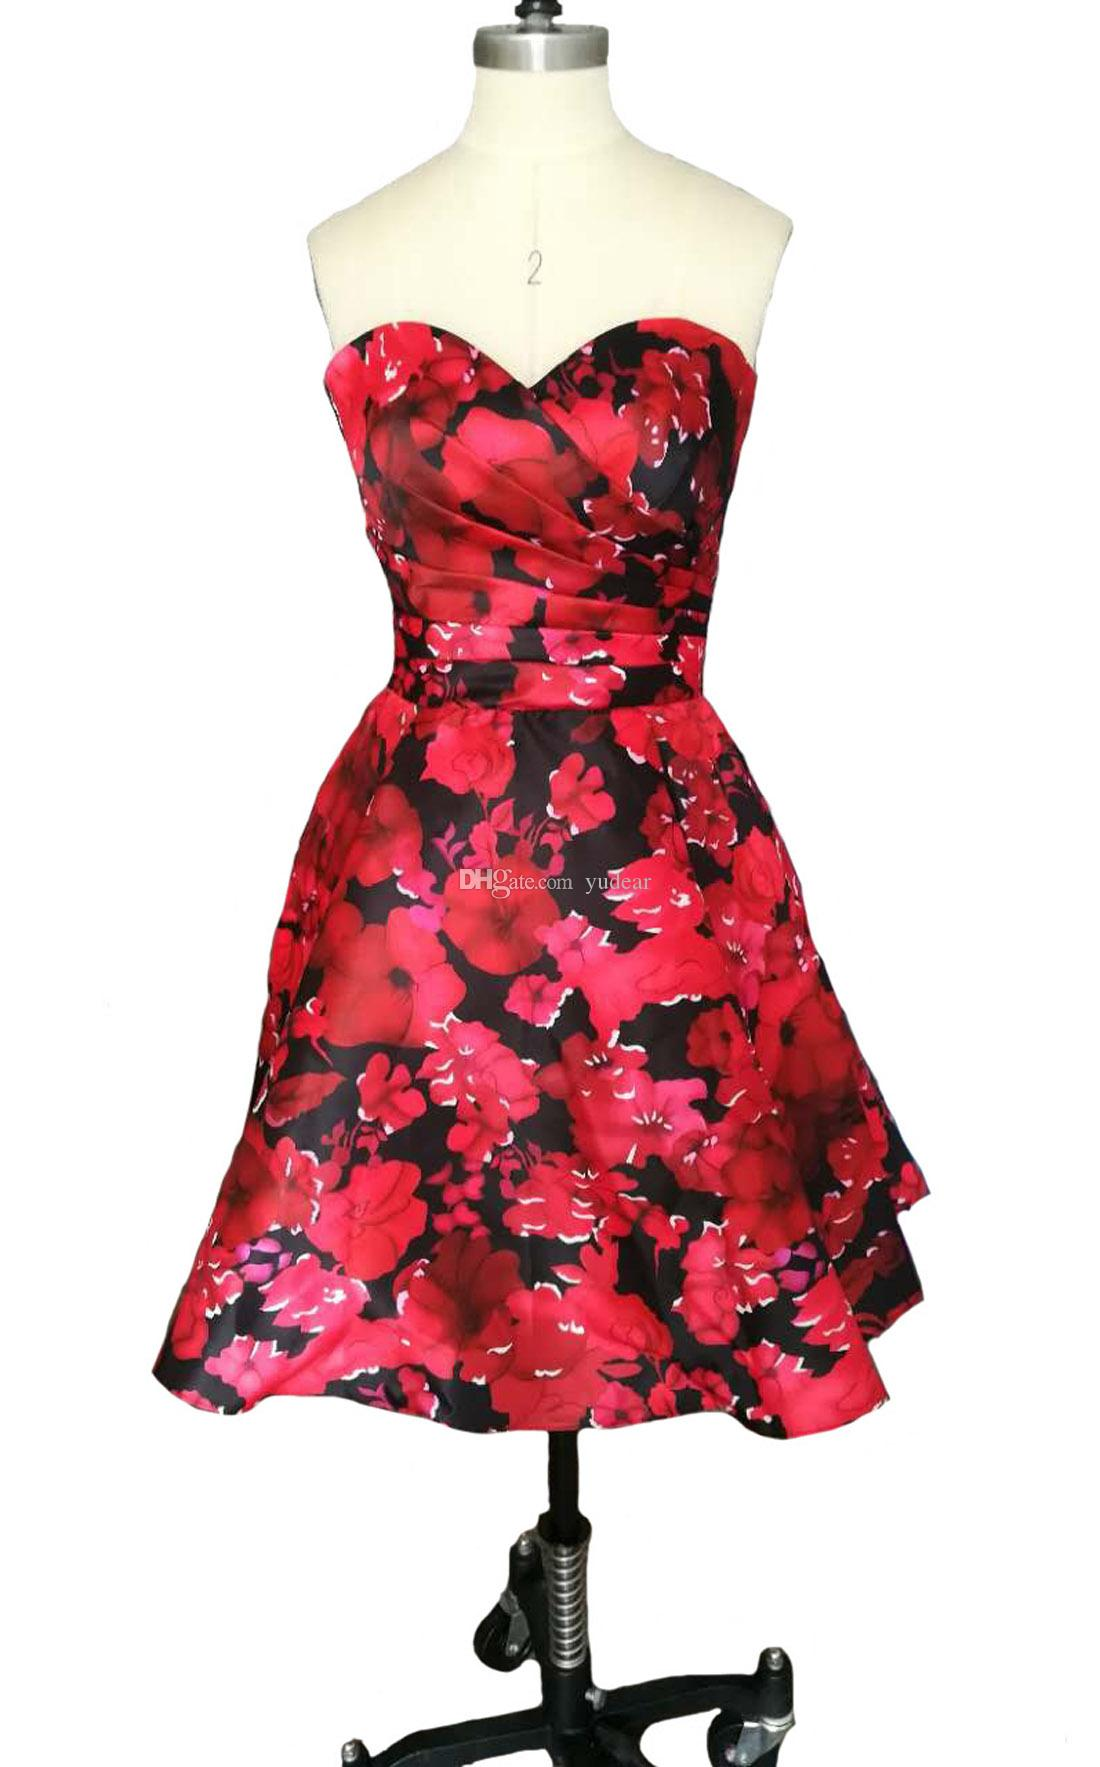 2019 Sweetheart A-line Women Homecoming Gowns Short Floral Printed Satin Skirts Cocktail Dresses Hot Open Back Draped Ruched Dress for Prom